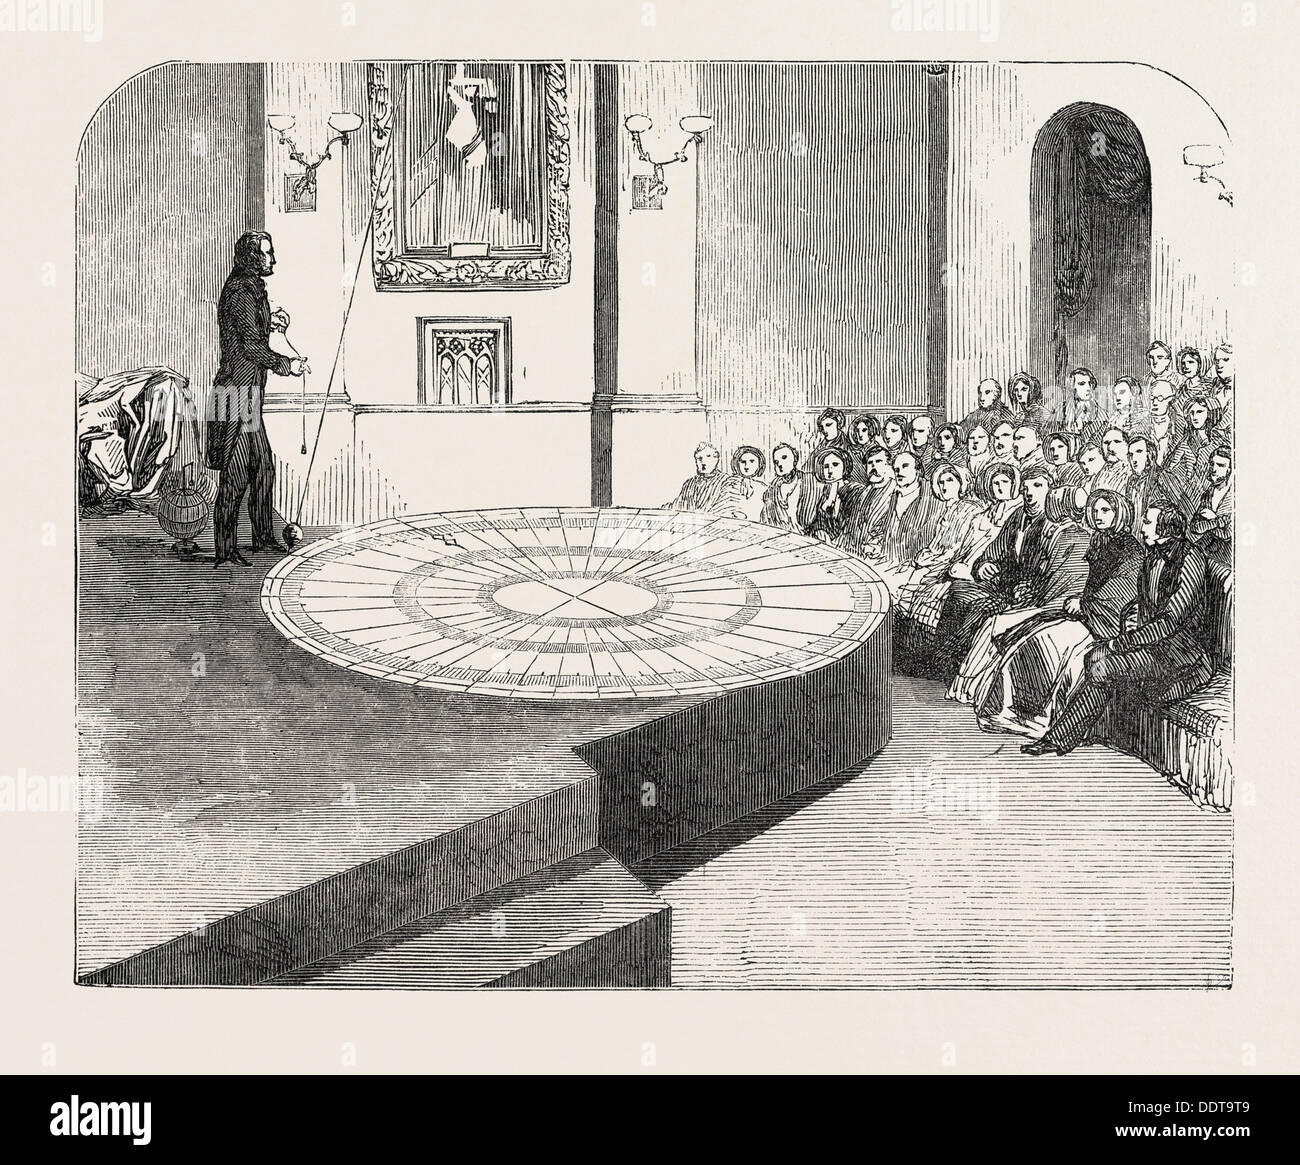 THE ROTATION OF THE EARTH MADE VISIBLE, AT THE POLYTECHNIC INSTITUTION, REGENT SREET, LONDON, UK, 1851 engraving - Stock Image